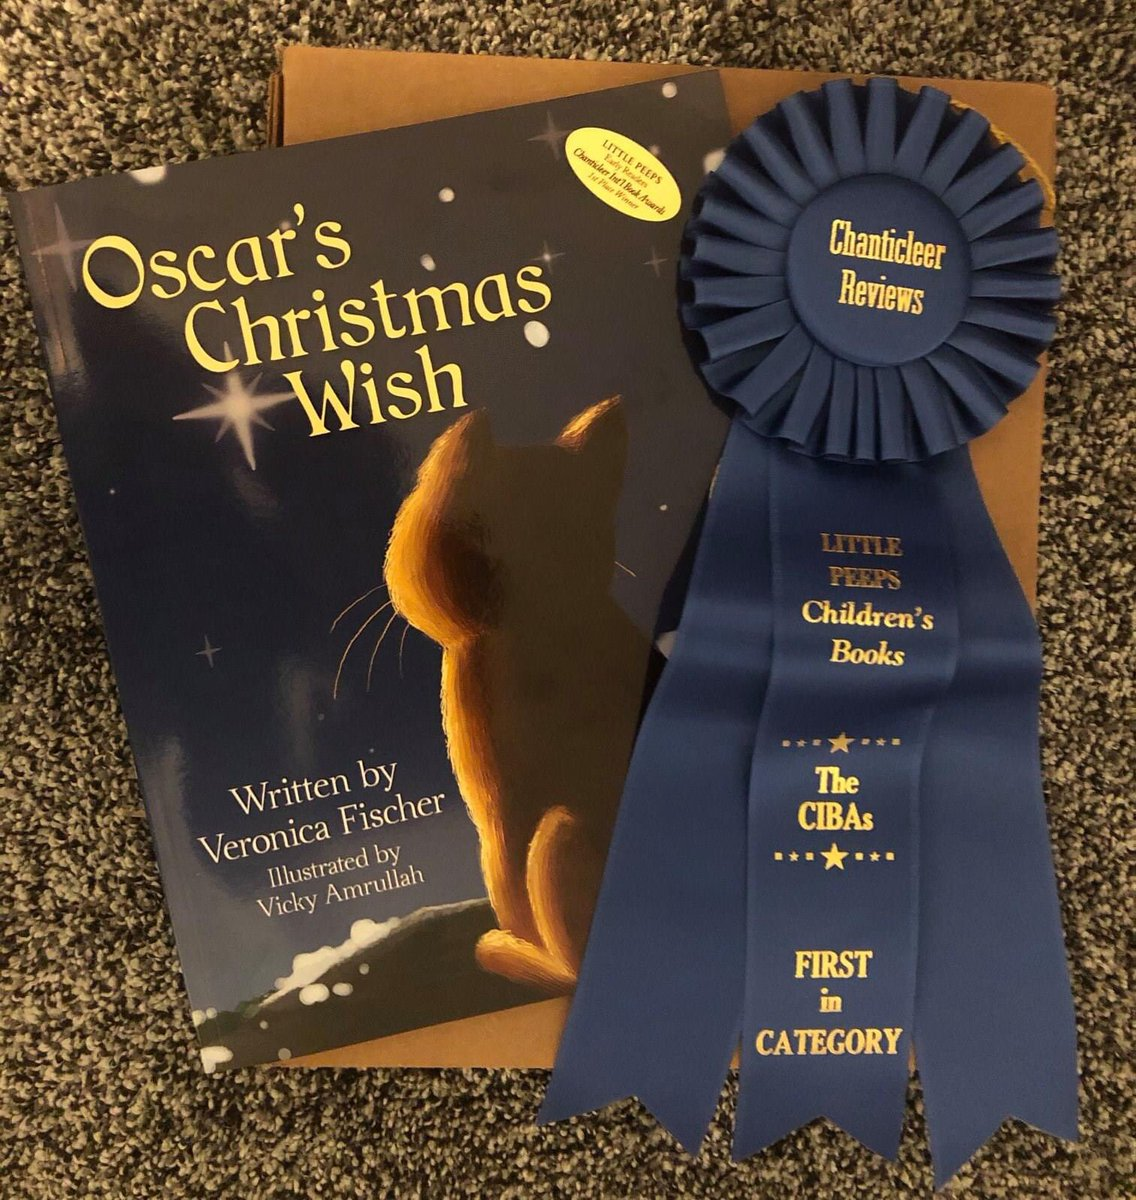 @ZacEfron was watching your show #downtoearth and saw that you loved Ocelots and my Fiancé Wrote a Children's book called Oscar's Christmas Wish and we want to know how to sent you a copy! #oscarschristmaswish